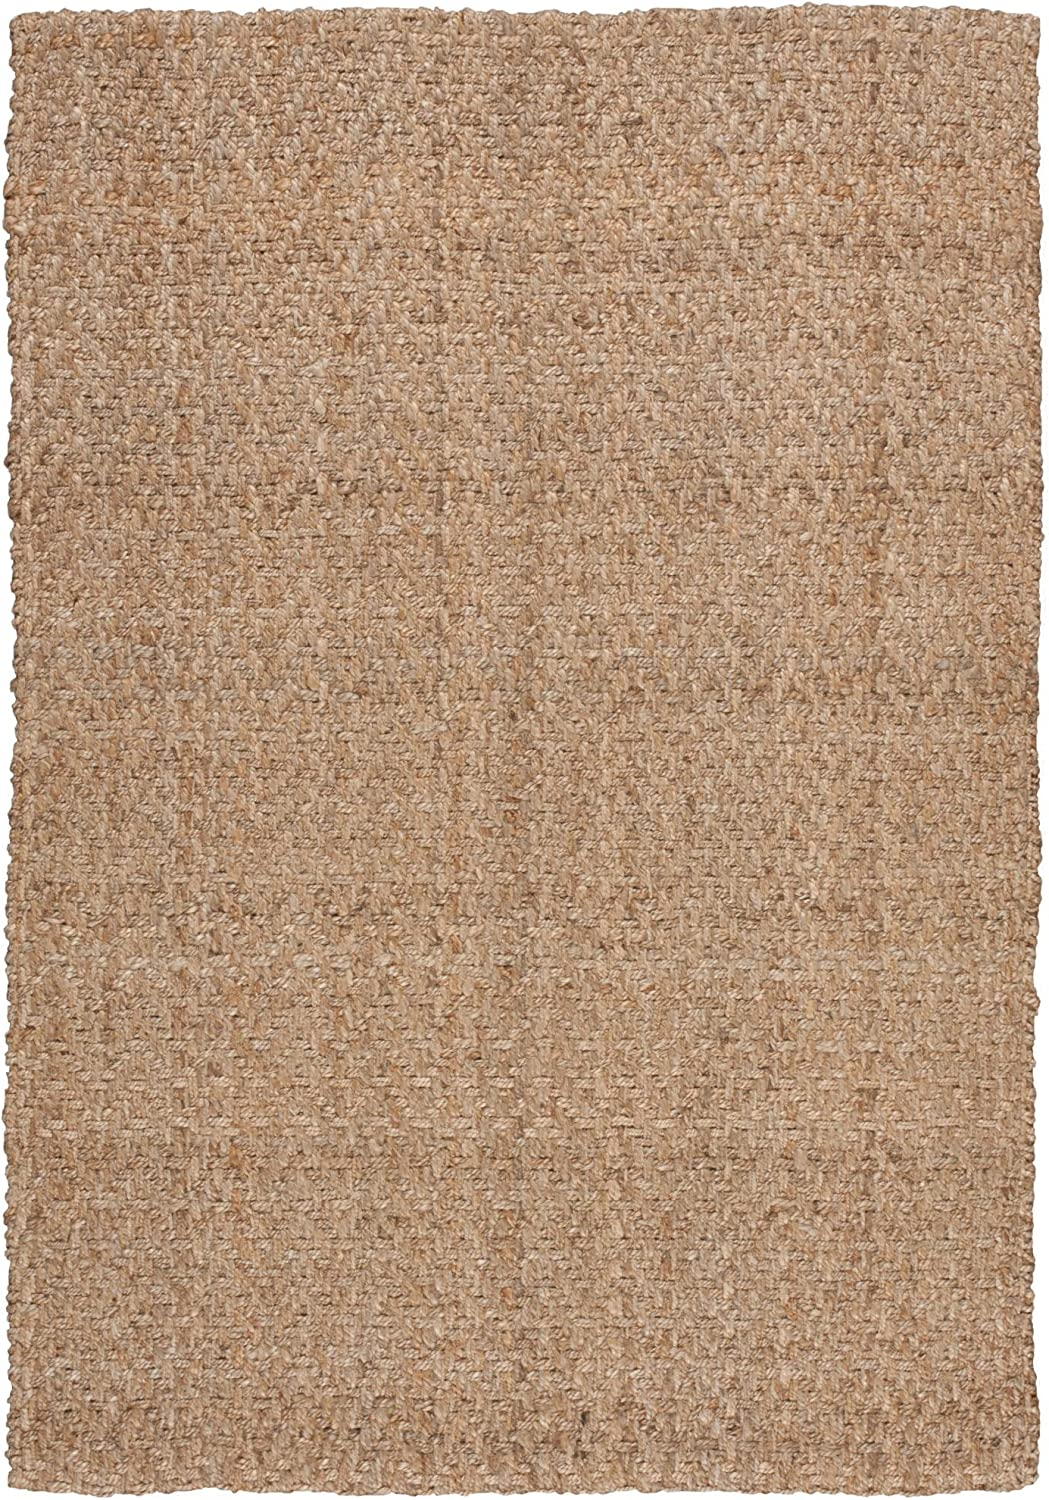 Nourison BSKW1 Basket Weave Nature Rectangle Area Rug, Natural, 2' x 3'